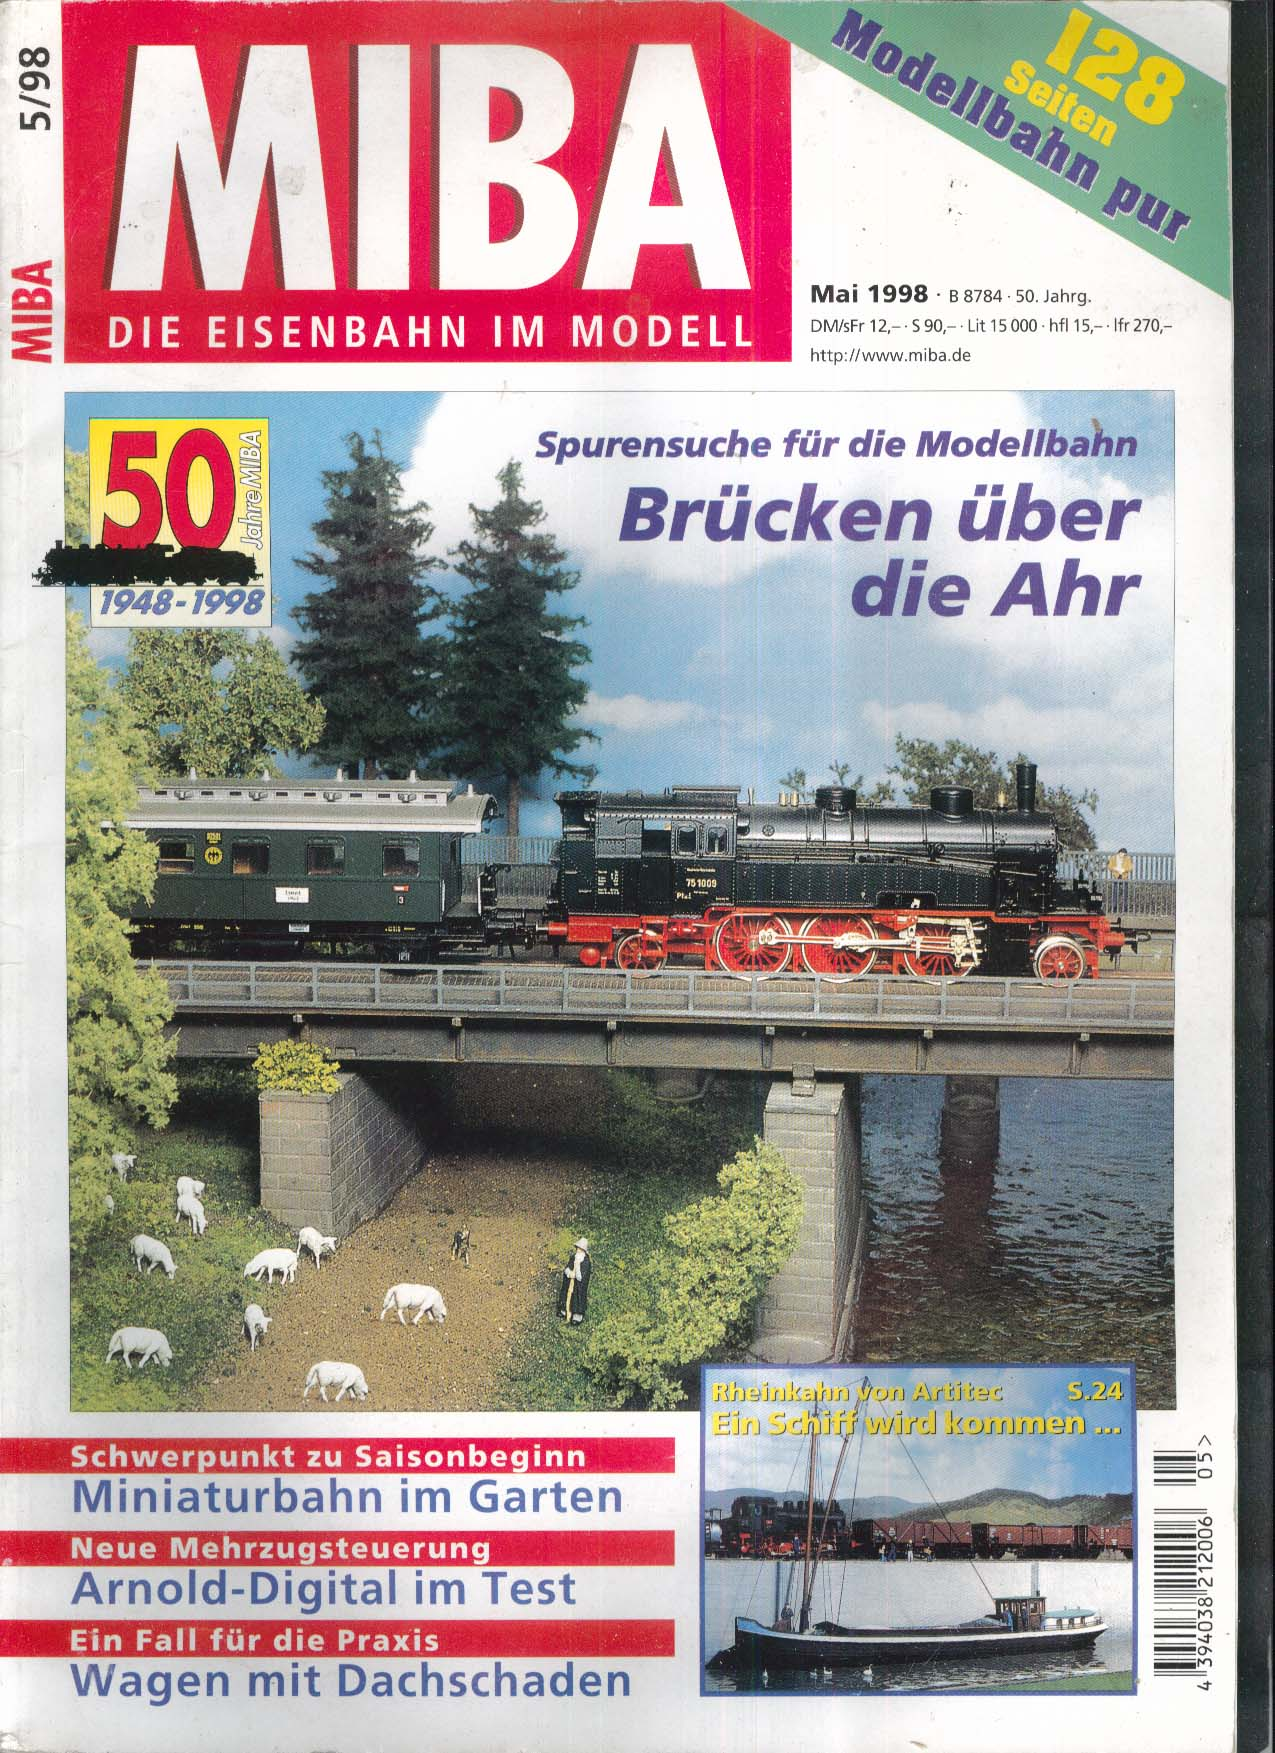 MIBA-Miniaturbahnen German-language model train magazine Brucken uber Ahr 5 1998